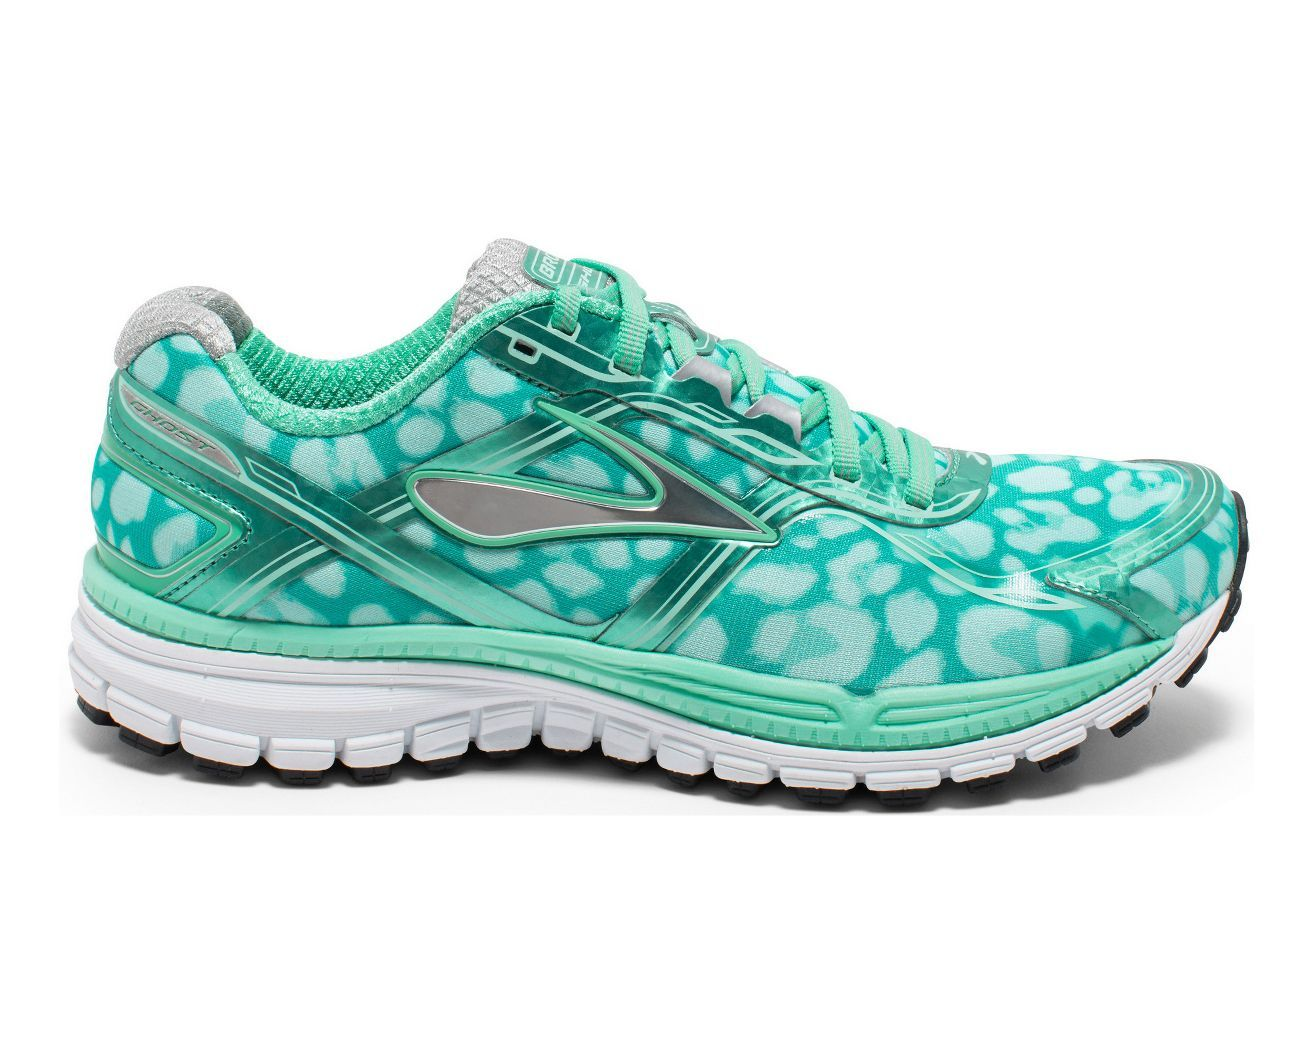 6e290f7e197 Womens Brooks Ghost 8 Urban Jungle Running Shoe at Road Runner Sports